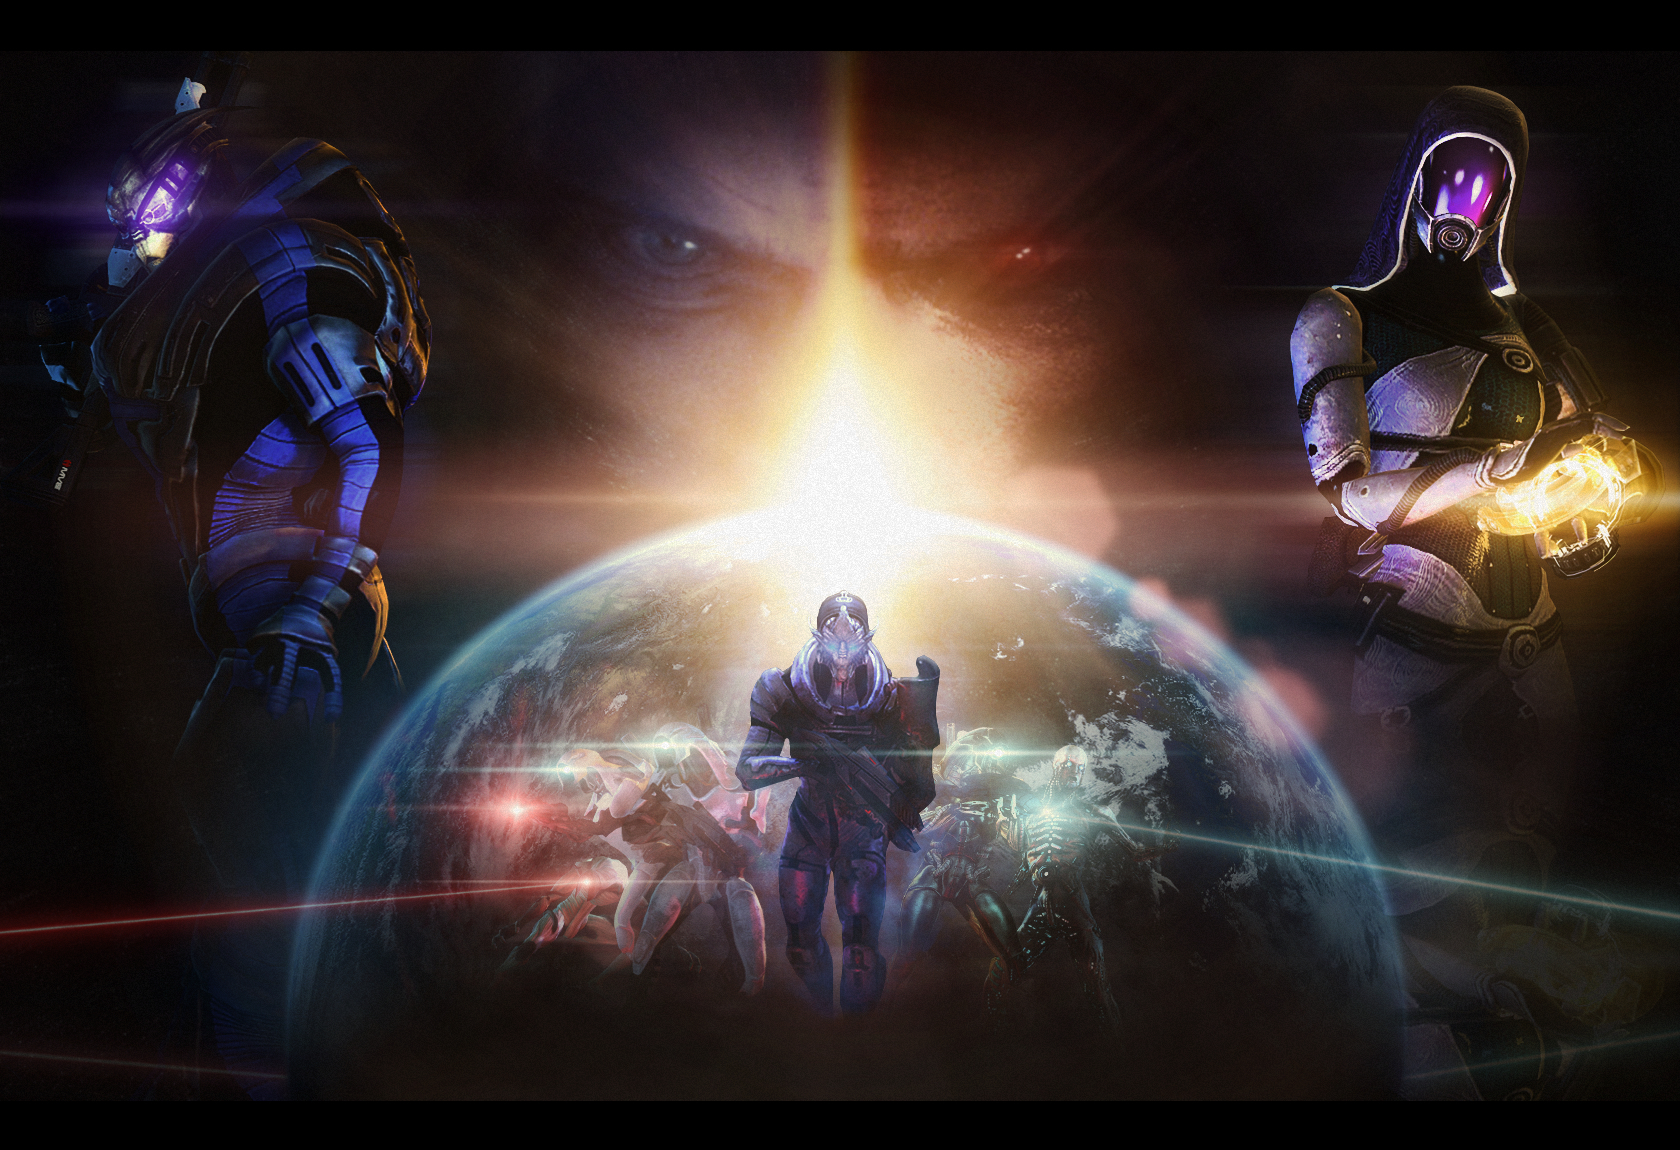 mass effect game HD Wallpaper